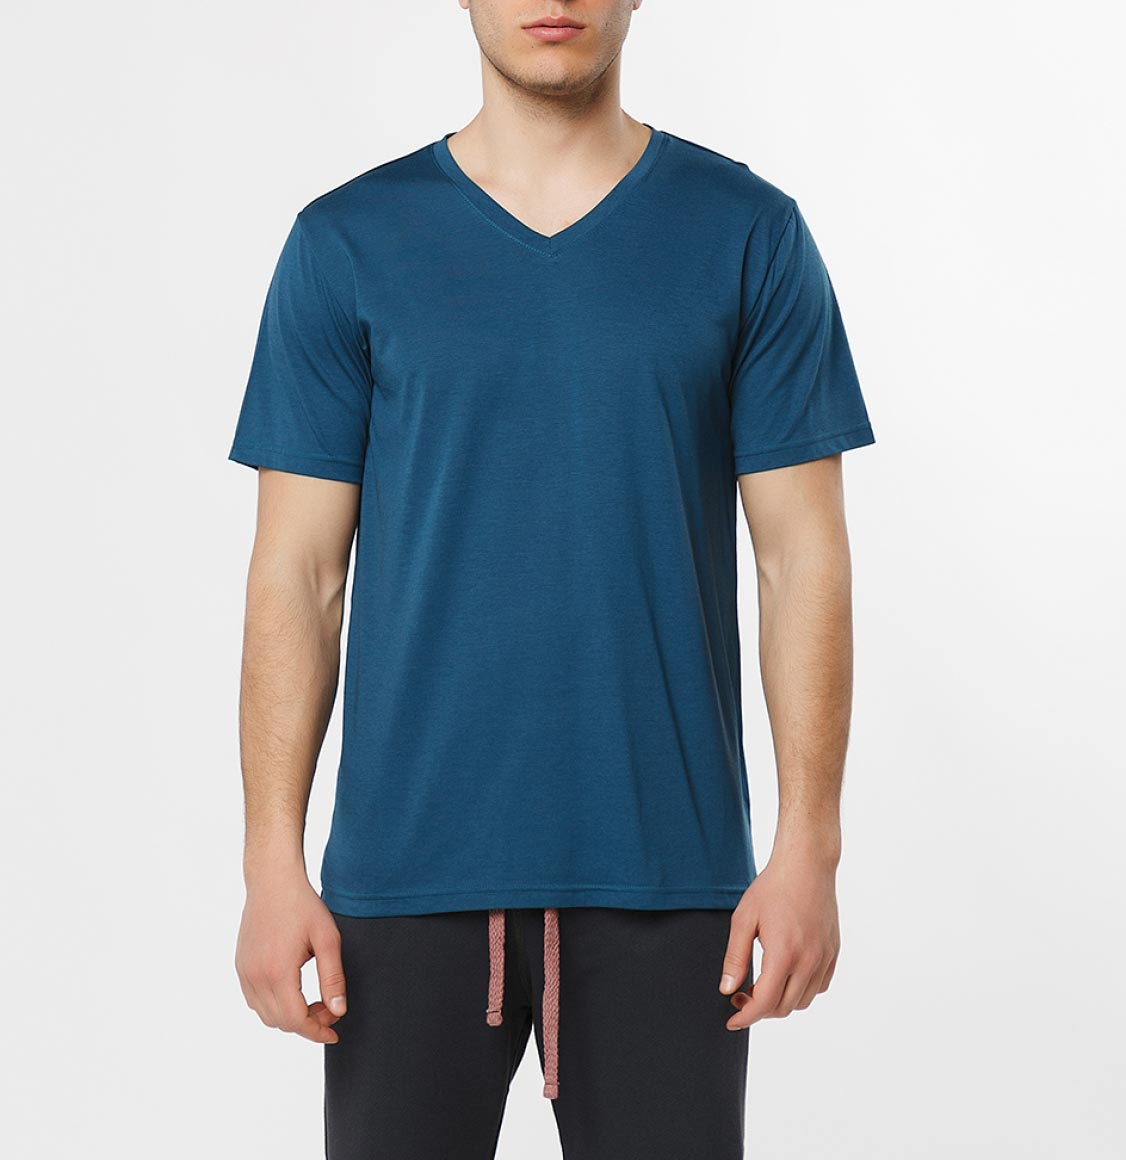 The Project Garments Organic Cotton V-neck T-shirt Blueberry